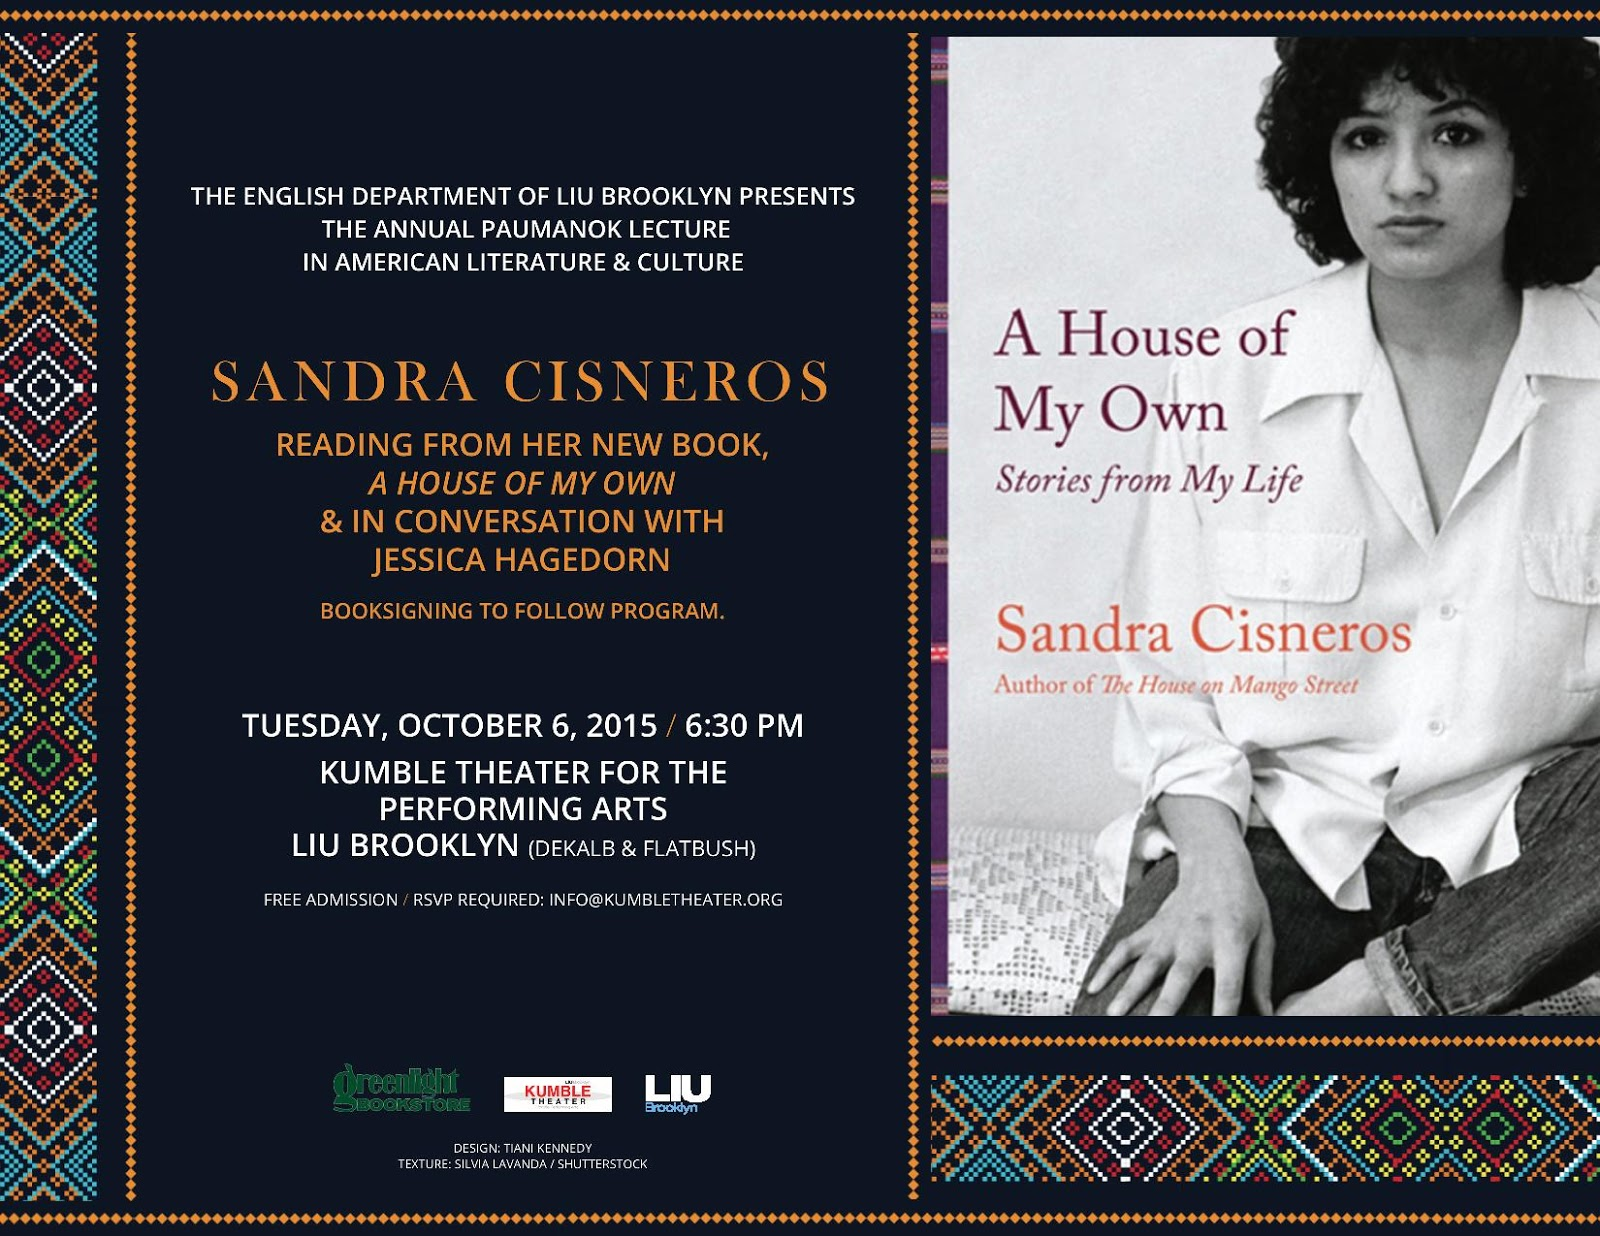 a biography of sandra cisneros an american novelist The experiences of esperanza, the adolescent protagonist of the house on mango street, closely resemble those of sandra cisneros's childhoodthe author was born to a mexican father and a mexican american mother in 1954 in chicago, illinois, the only daughter of seven children.